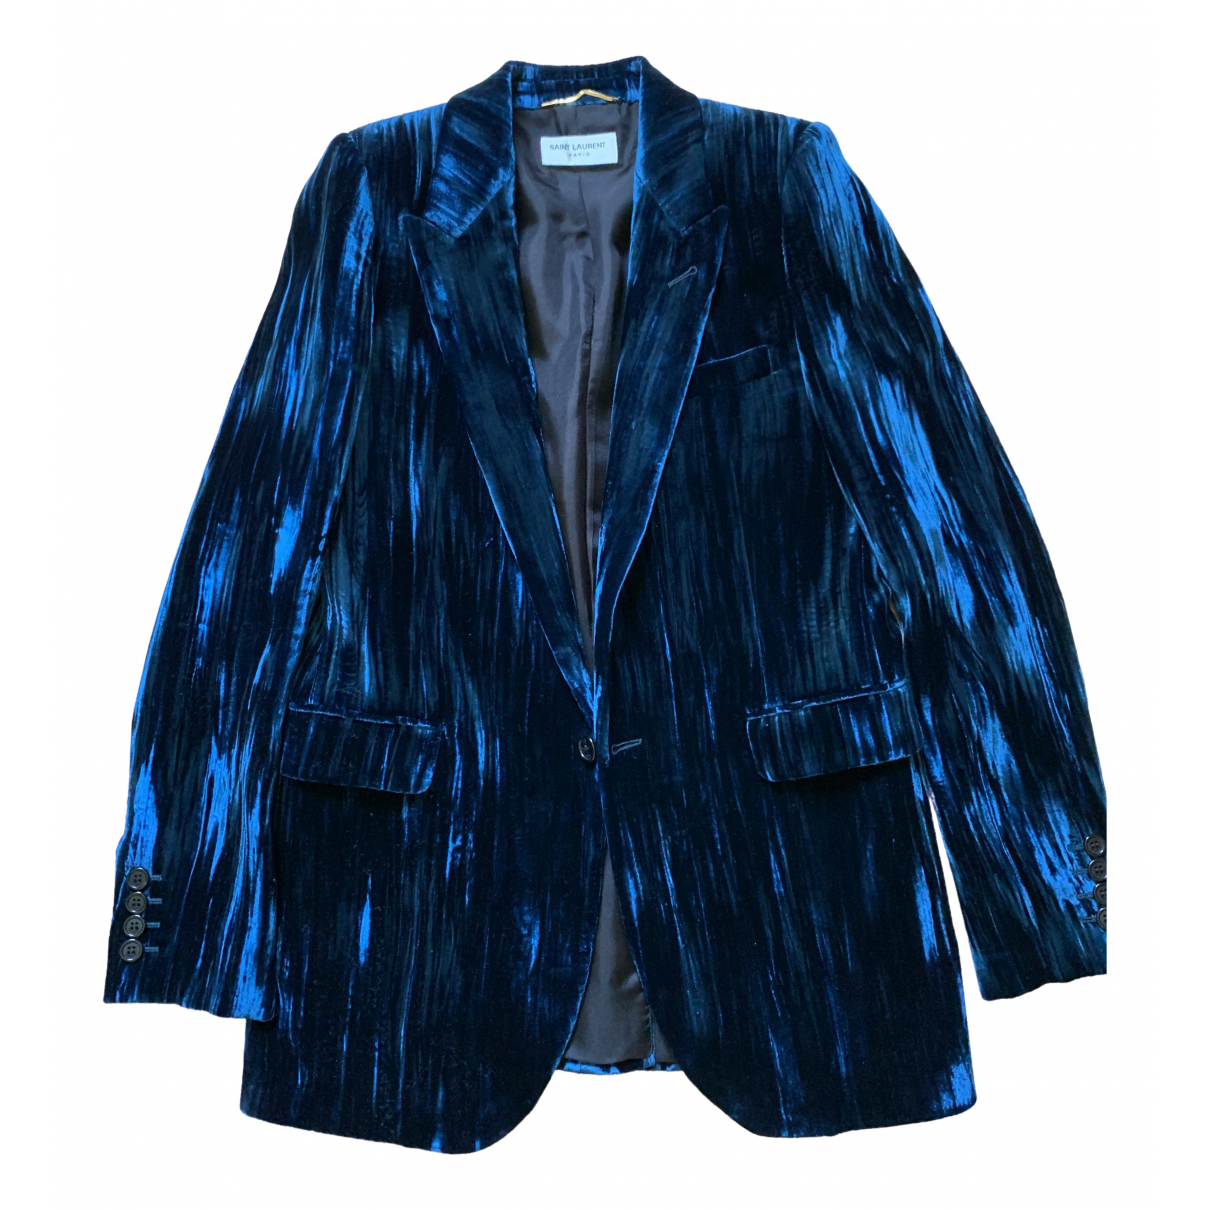 Saint Laurent \N Blue jacket for Women 36 FR